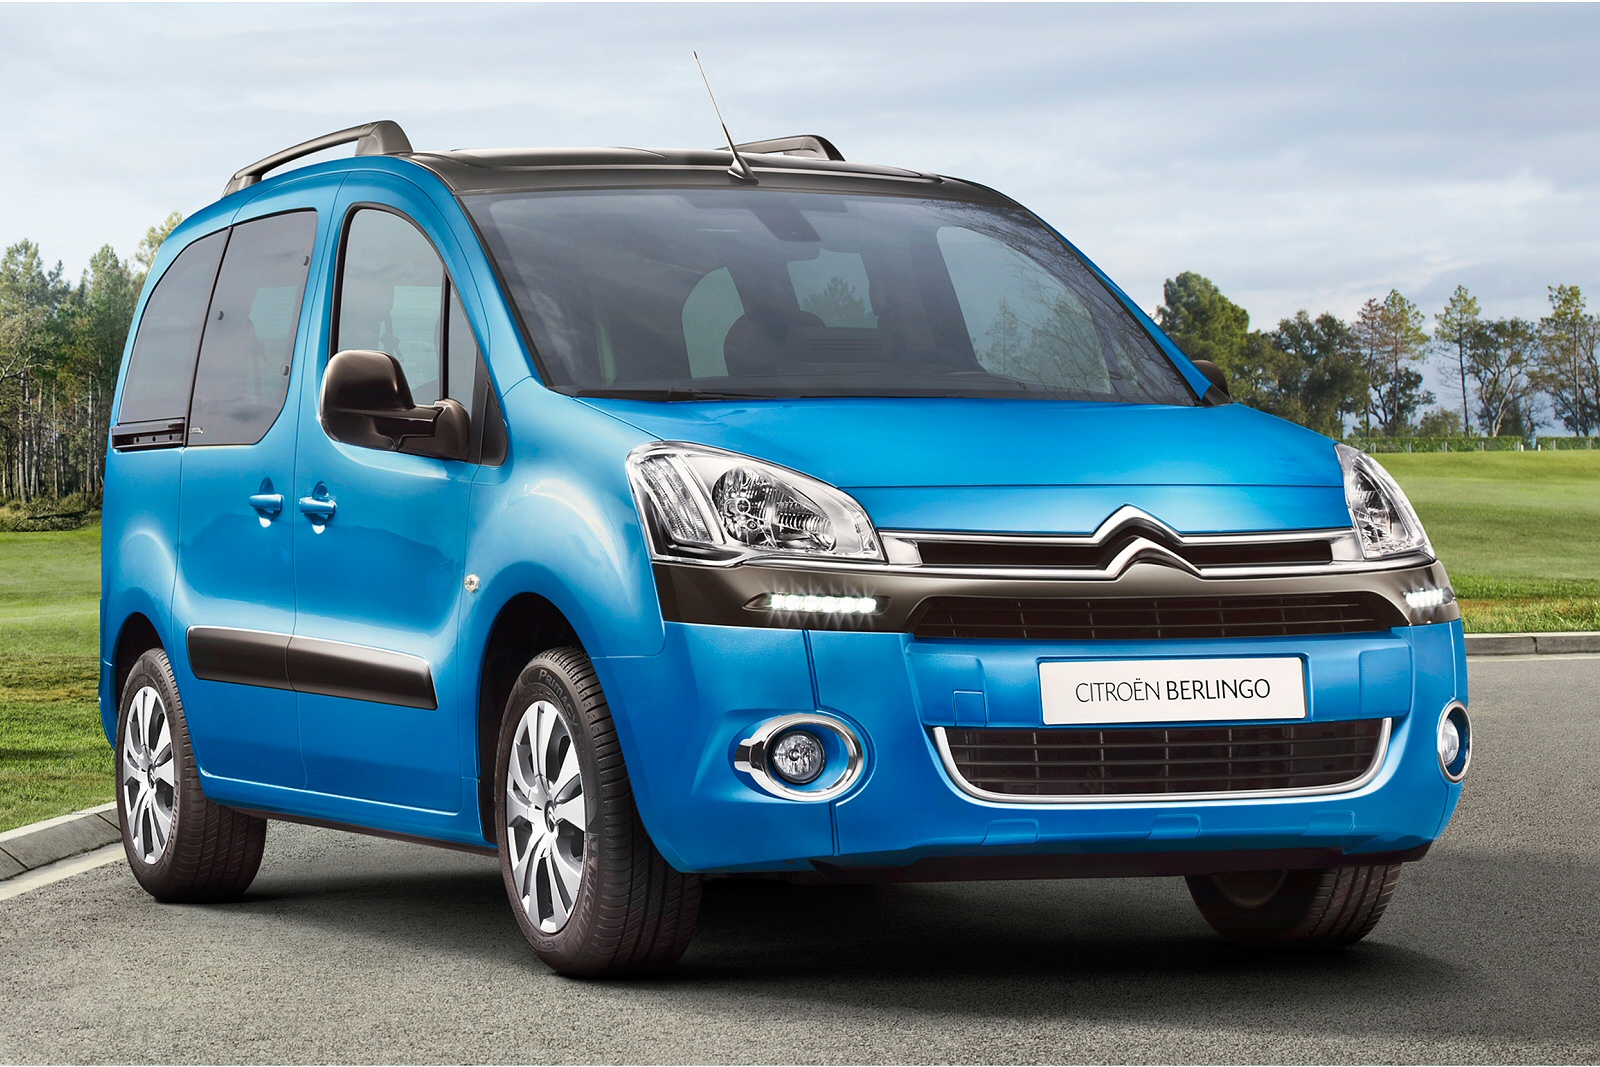 Image two of the Citroen Berlingo Multispace